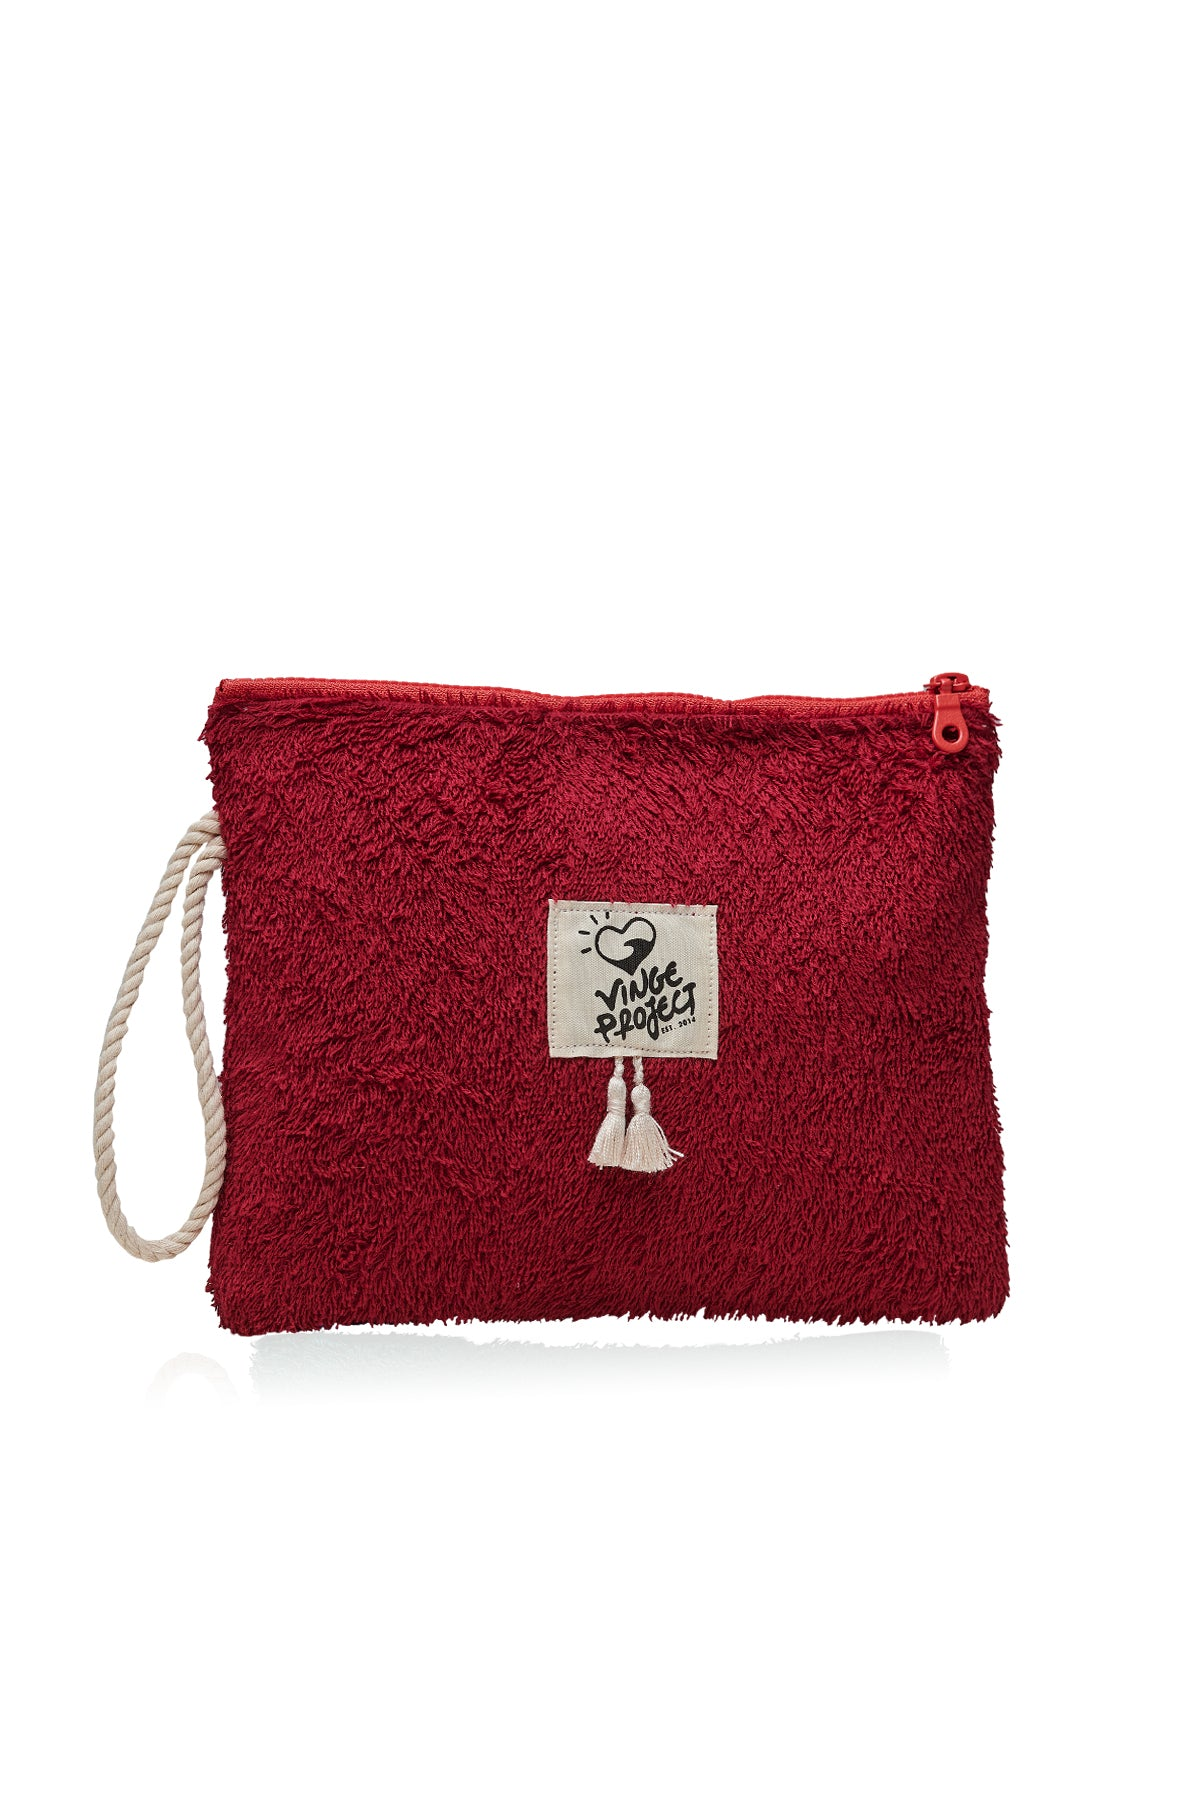 Cherry 𝐒𝐦𝐚𝐥𝐥 Waterproof Clutch Bag